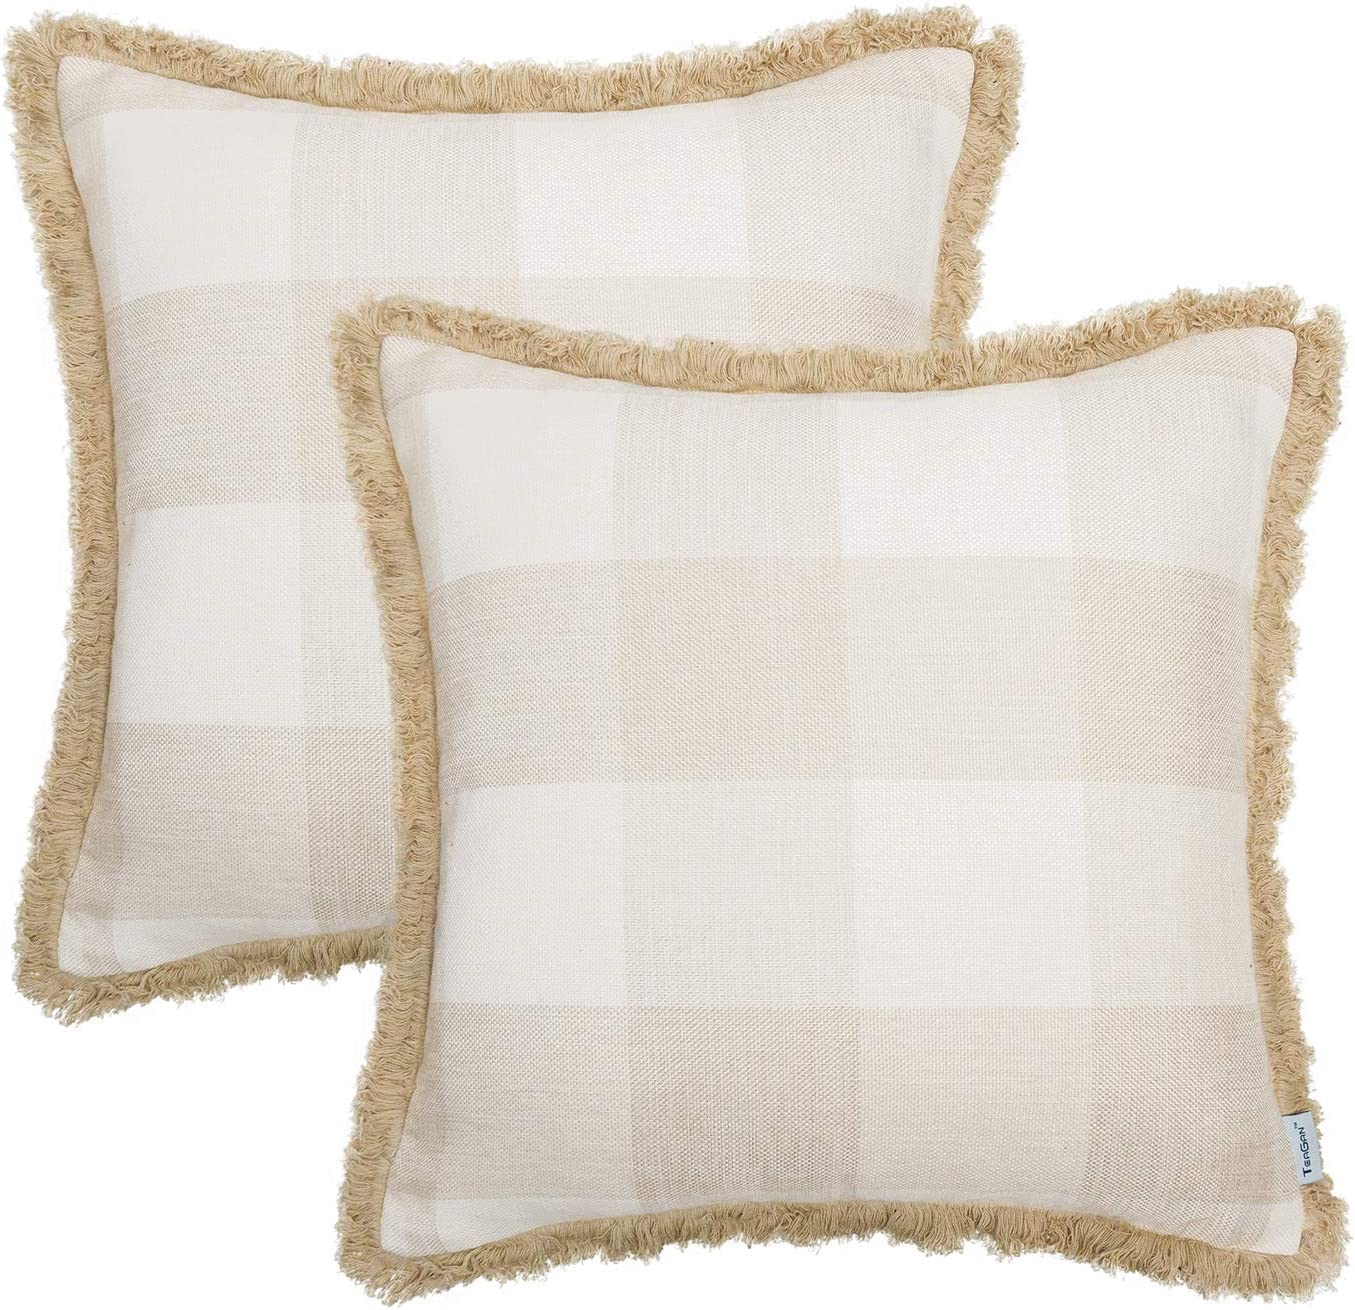 TEAGAN Buffalo Check Plaid Throw Pillow Covers, Farmhouse Decorative Pillow Covers with Cotton Linen Line Edge Decor for Home Bedroom, Living Room, Home Garden Couch Bed Sofa Chair, Cream & White